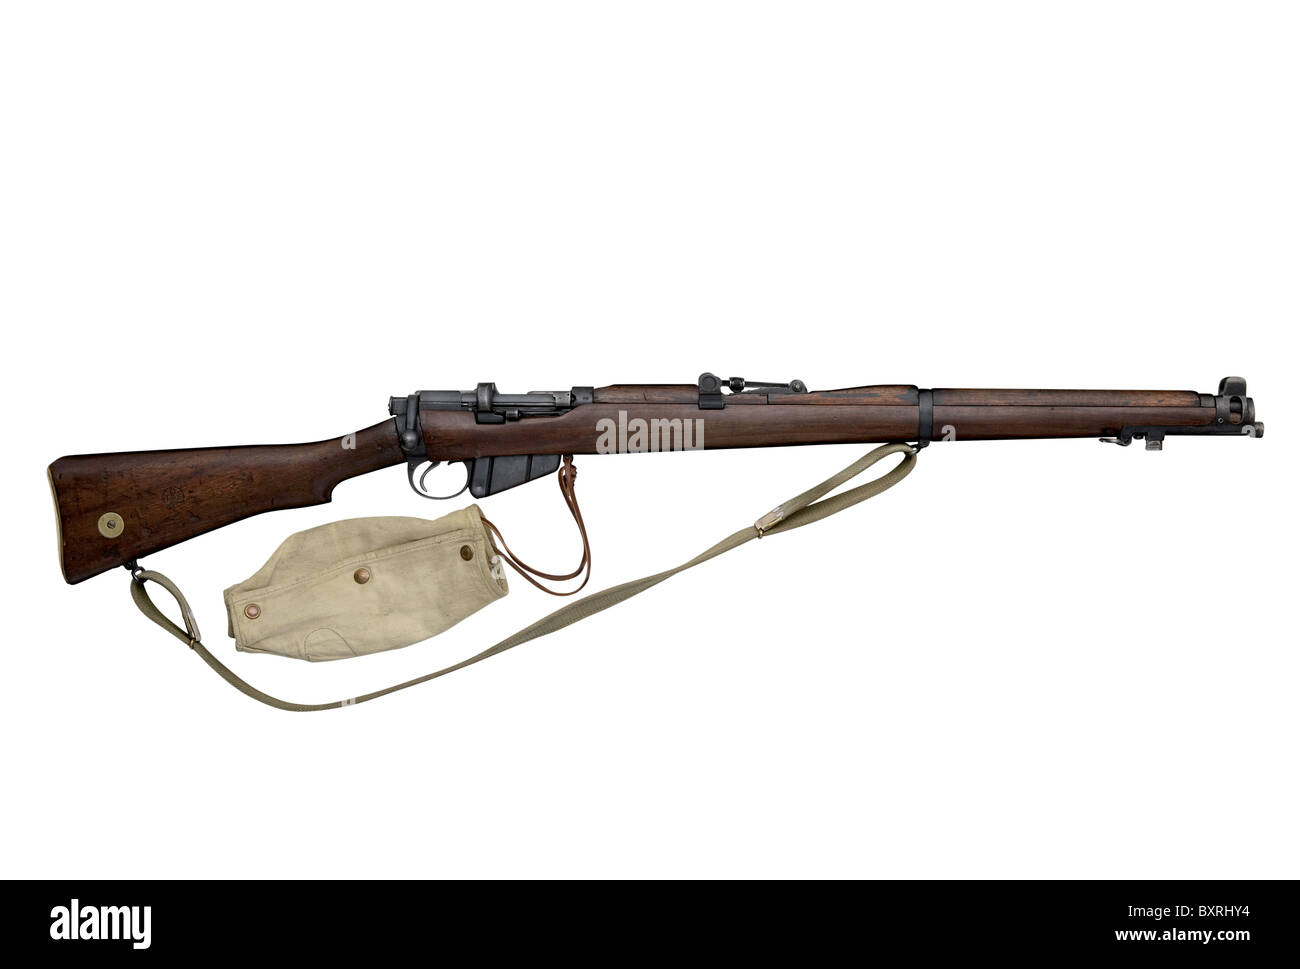 Lee Enfield rifle with canvas cover attached, as carried by British infantrymen during world war one - Stock Image